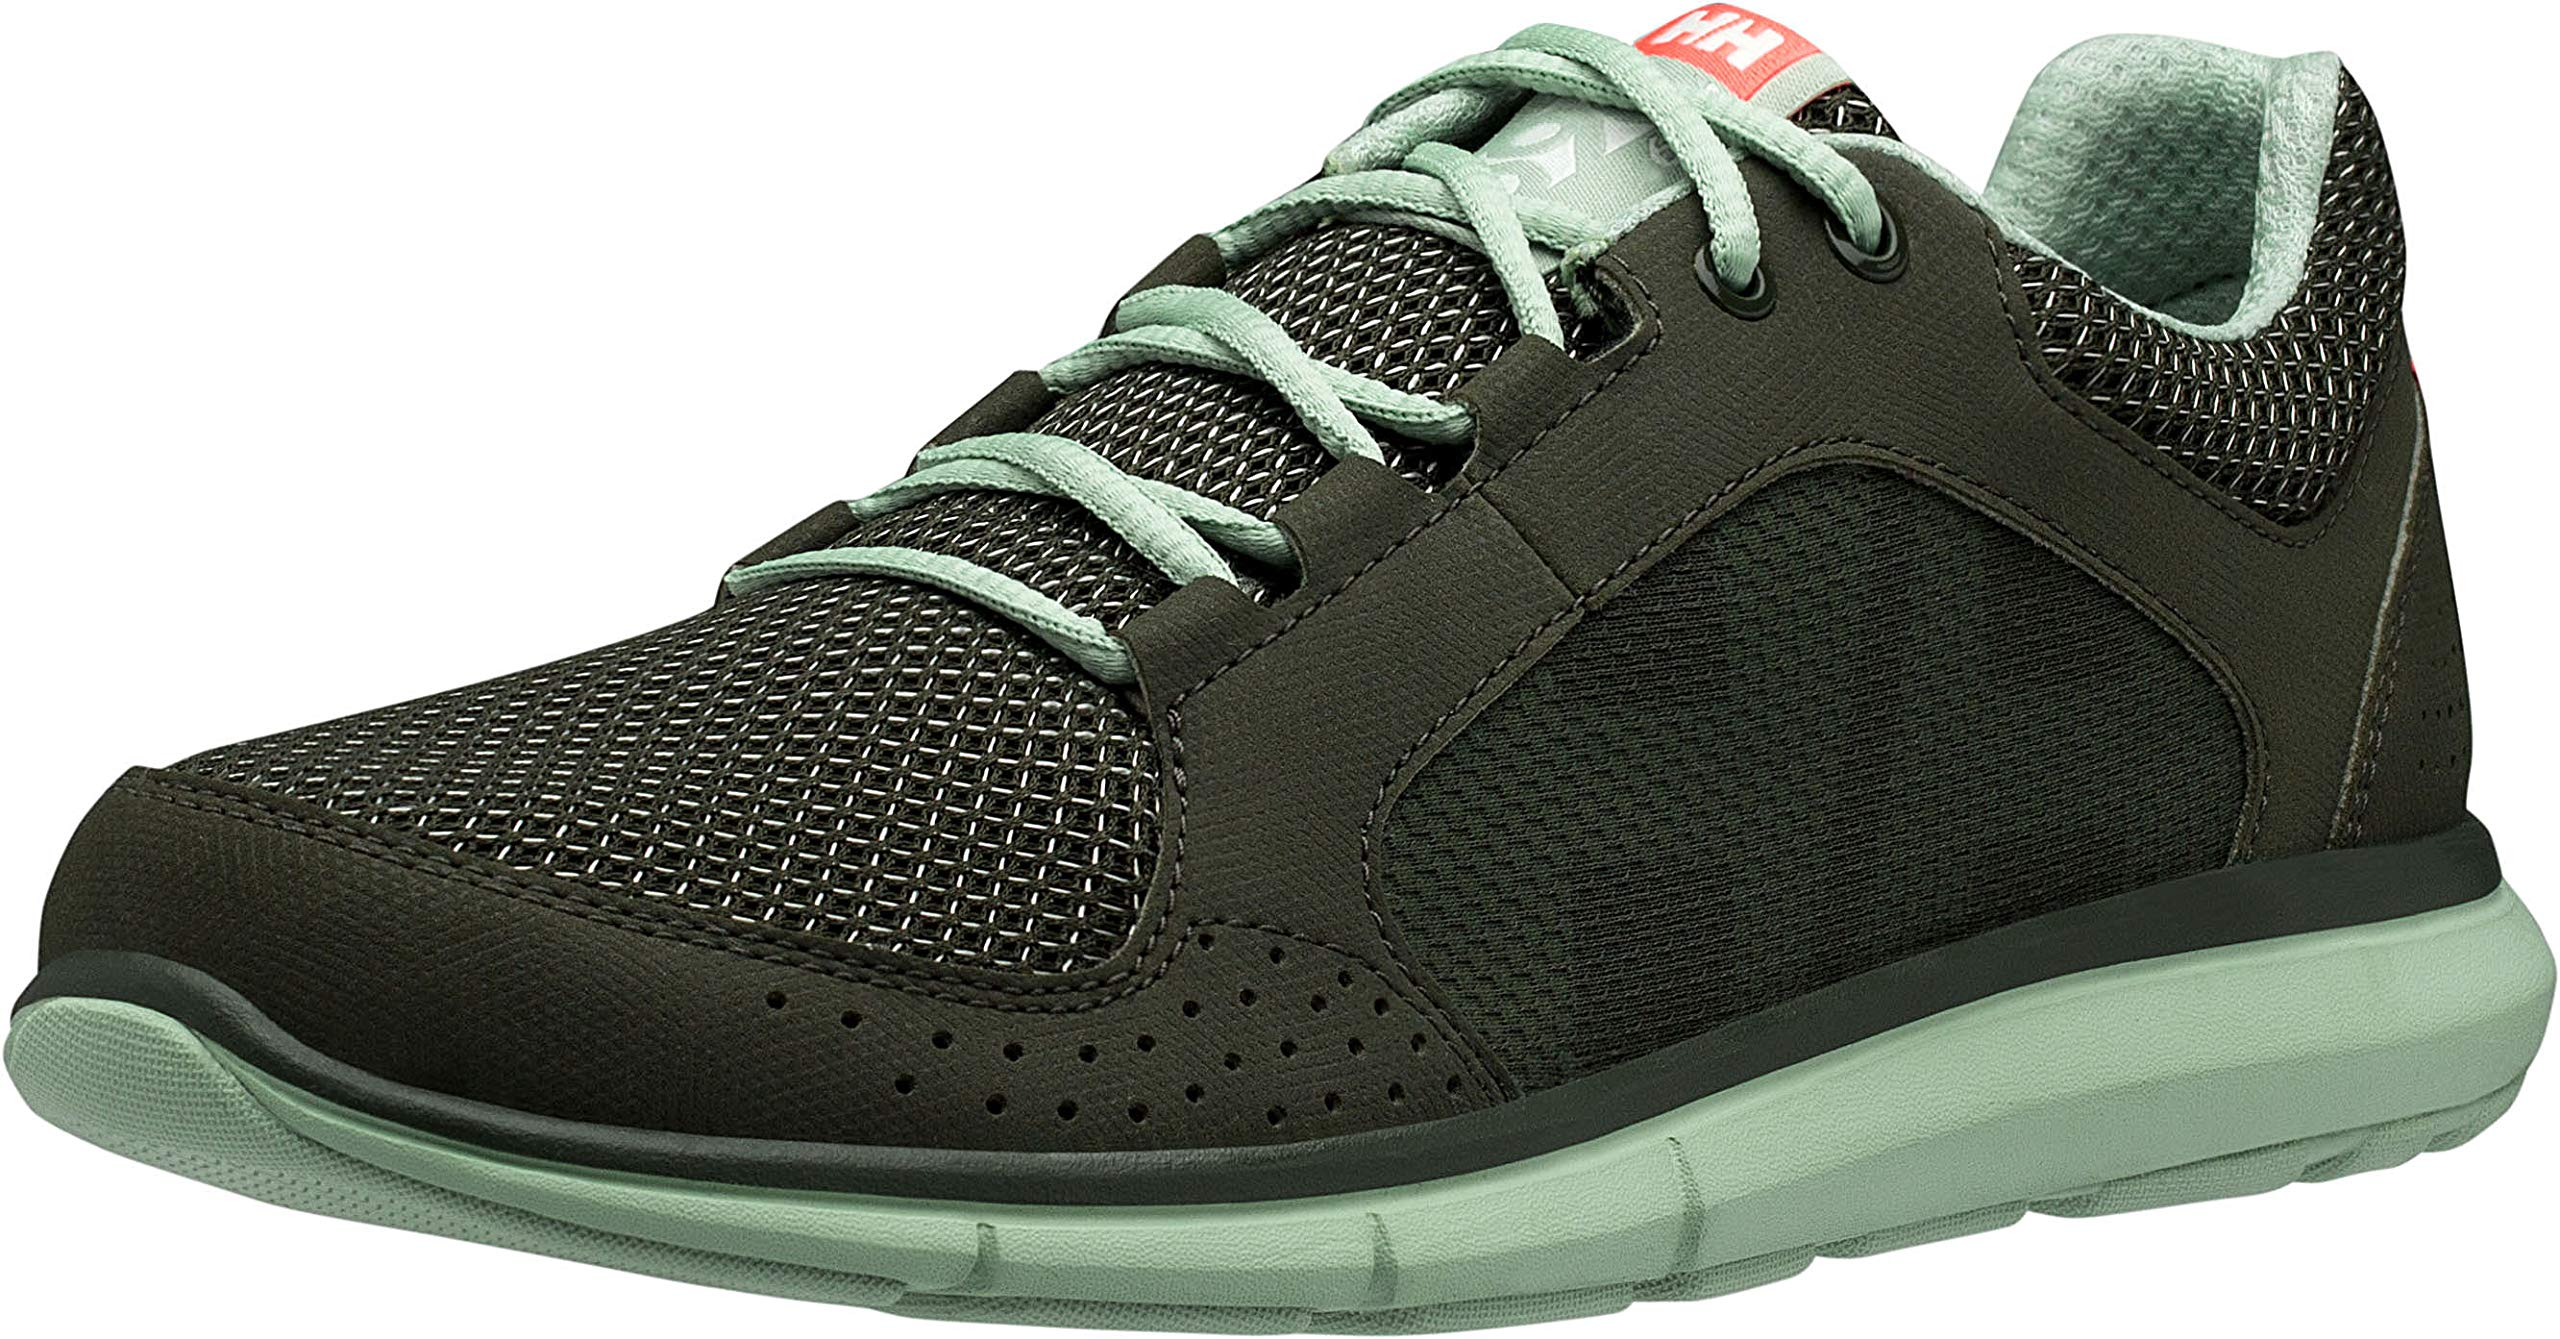 Helly Hansen Women's W Ahiga V3 Hydropower Fashion Sneaker, Forest Night/Cameo Green/Neon Coral, 7 by Helly Hansen